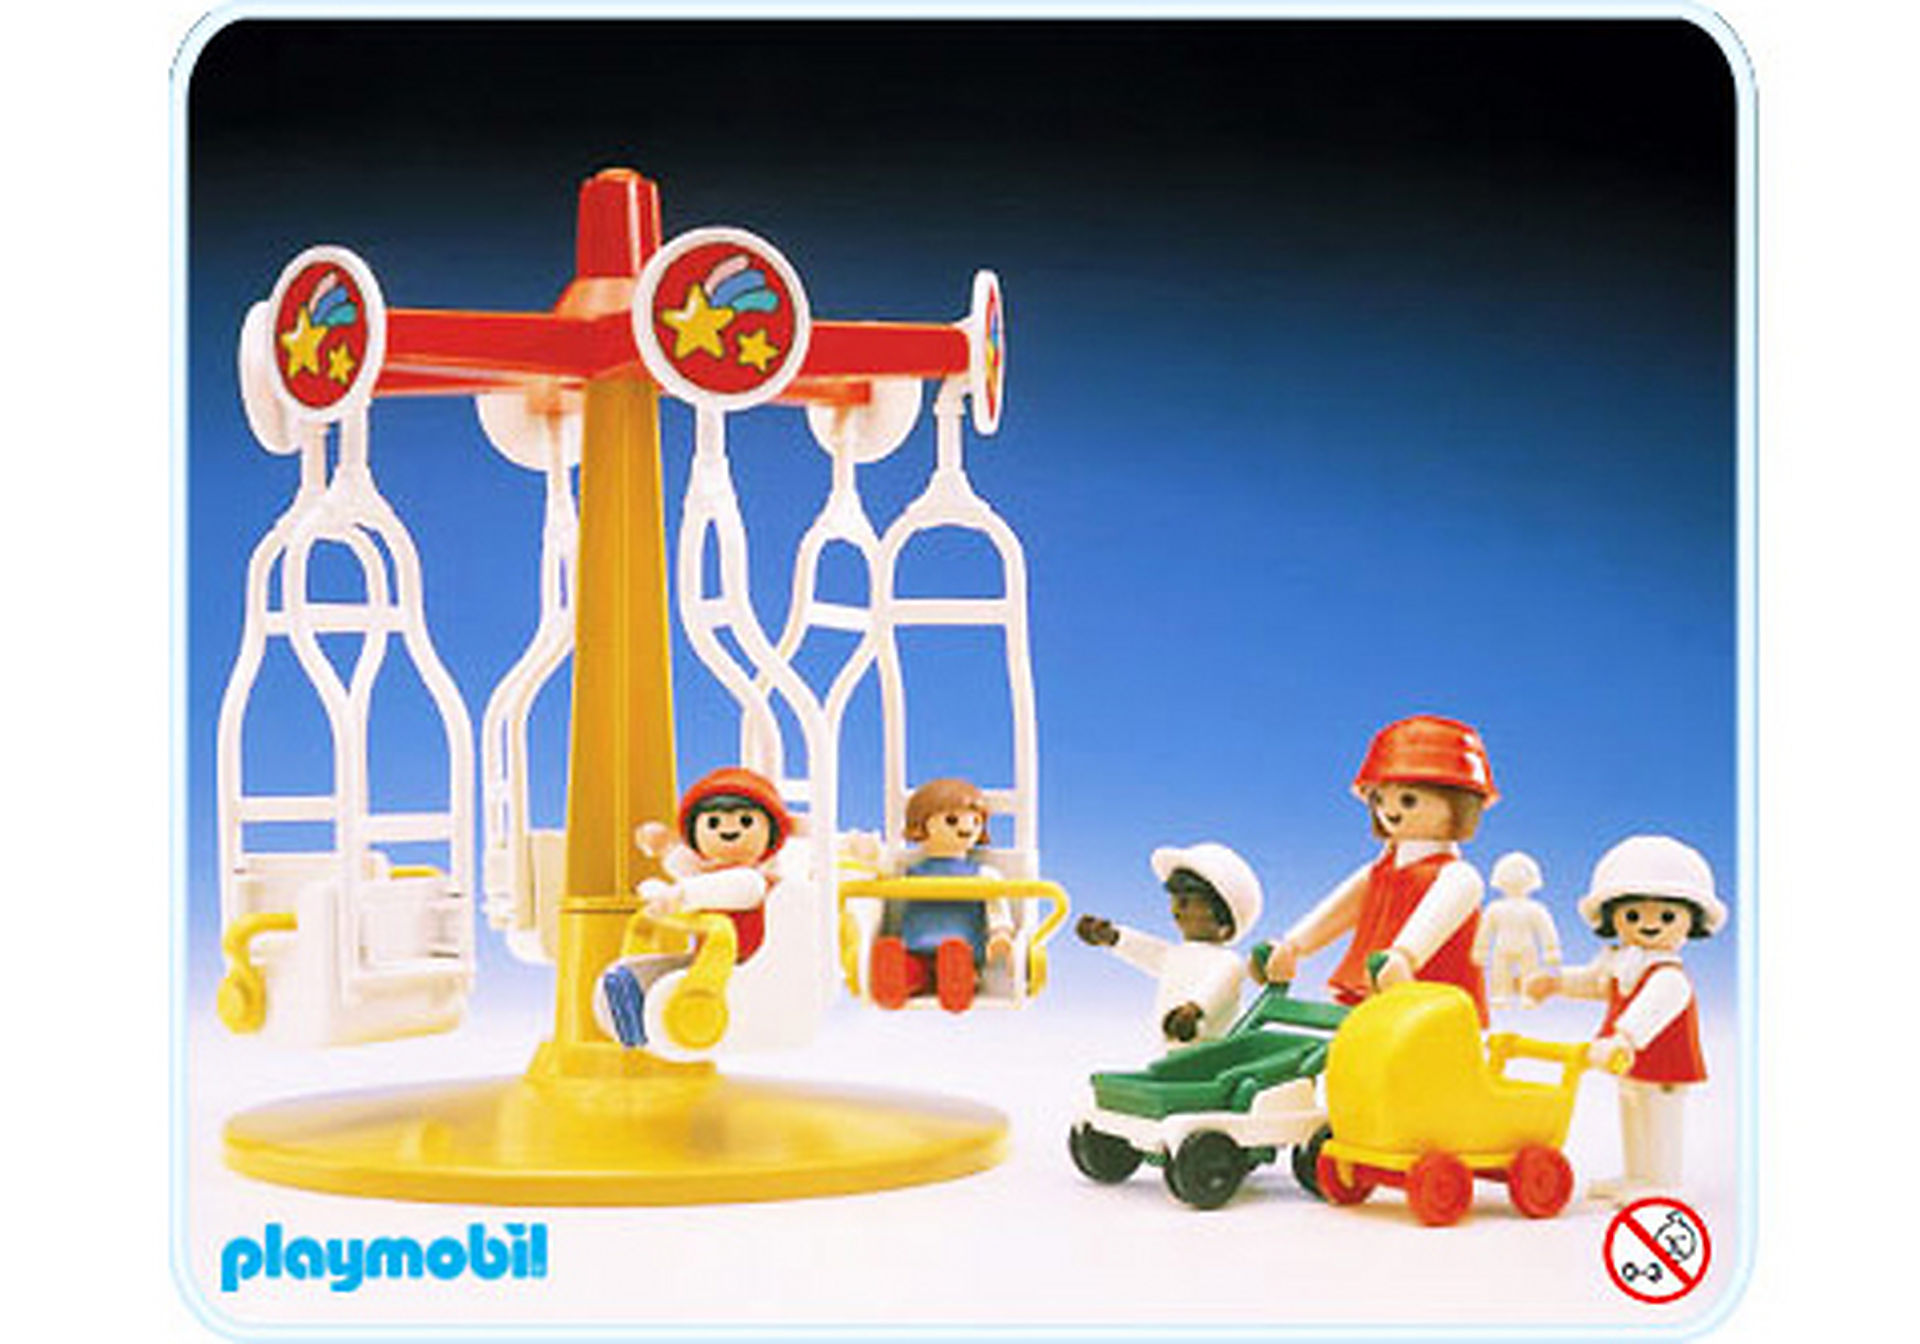 http://media.playmobil.com/i/playmobil/3195-A_product_detail/Kinderkarussell